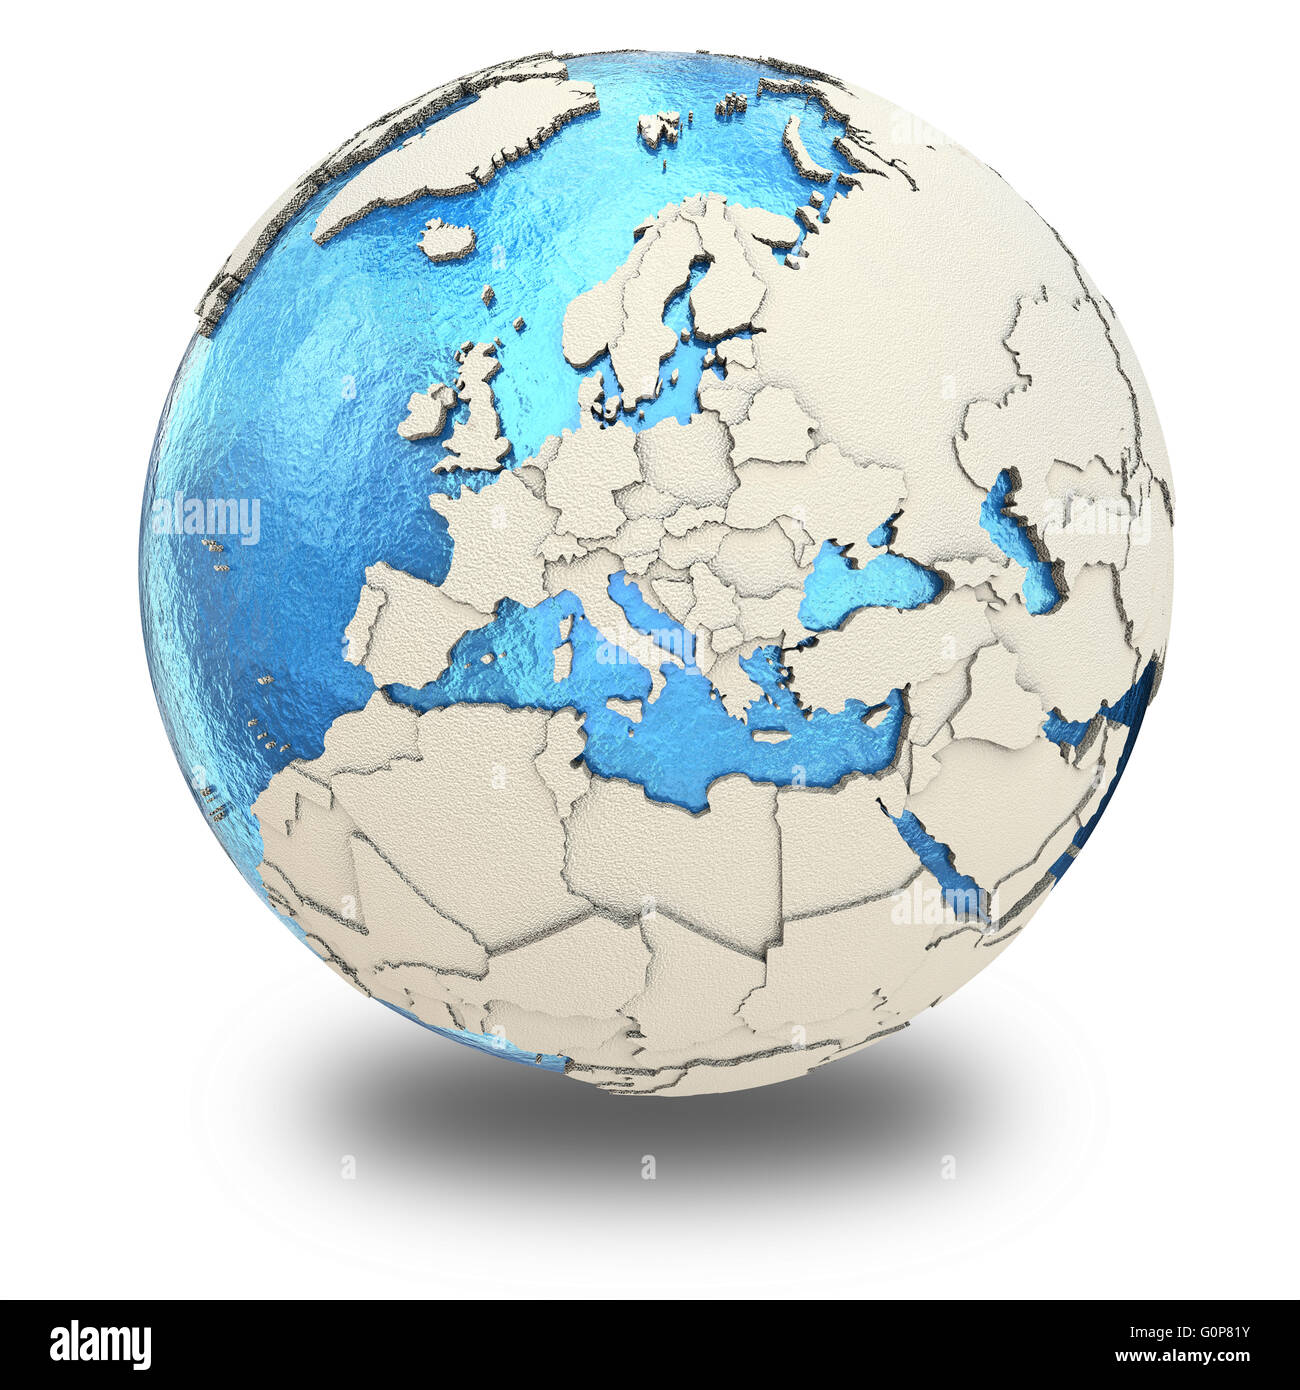 Europe on 3d model of blue earth with embossed countries and blue europe on 3d model of blue earth with embossed countries and blue ocean 3d illustration isolated on white background with shado gumiabroncs Image collections